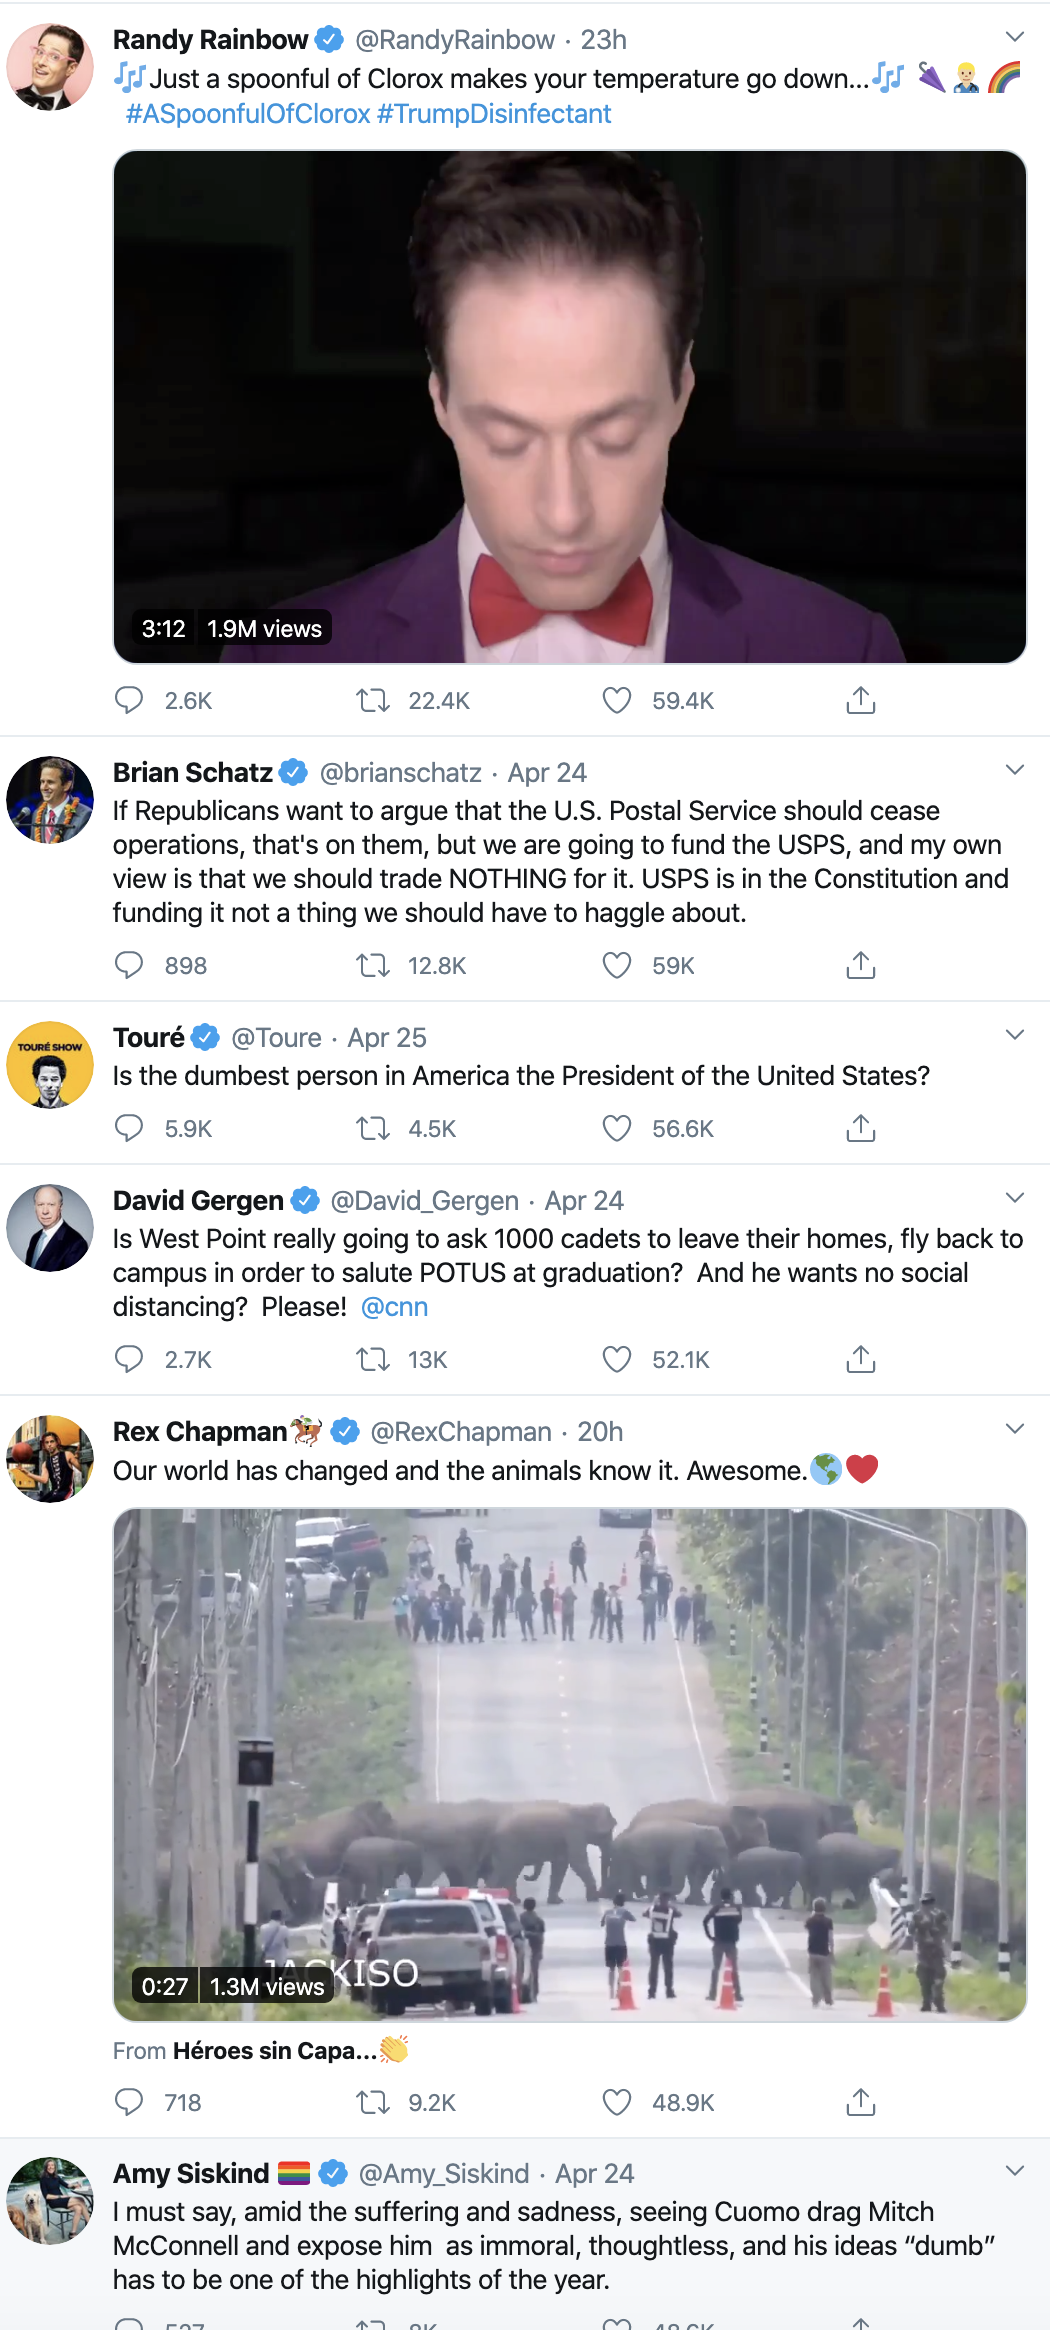 Screen-Shot-2020-04-26-at-9.26.32-AM Obama Tweets Updated Weekend 2020 Endorsement Like A Real Leader Election 2020 Featured Healthcare Politics Top Stories